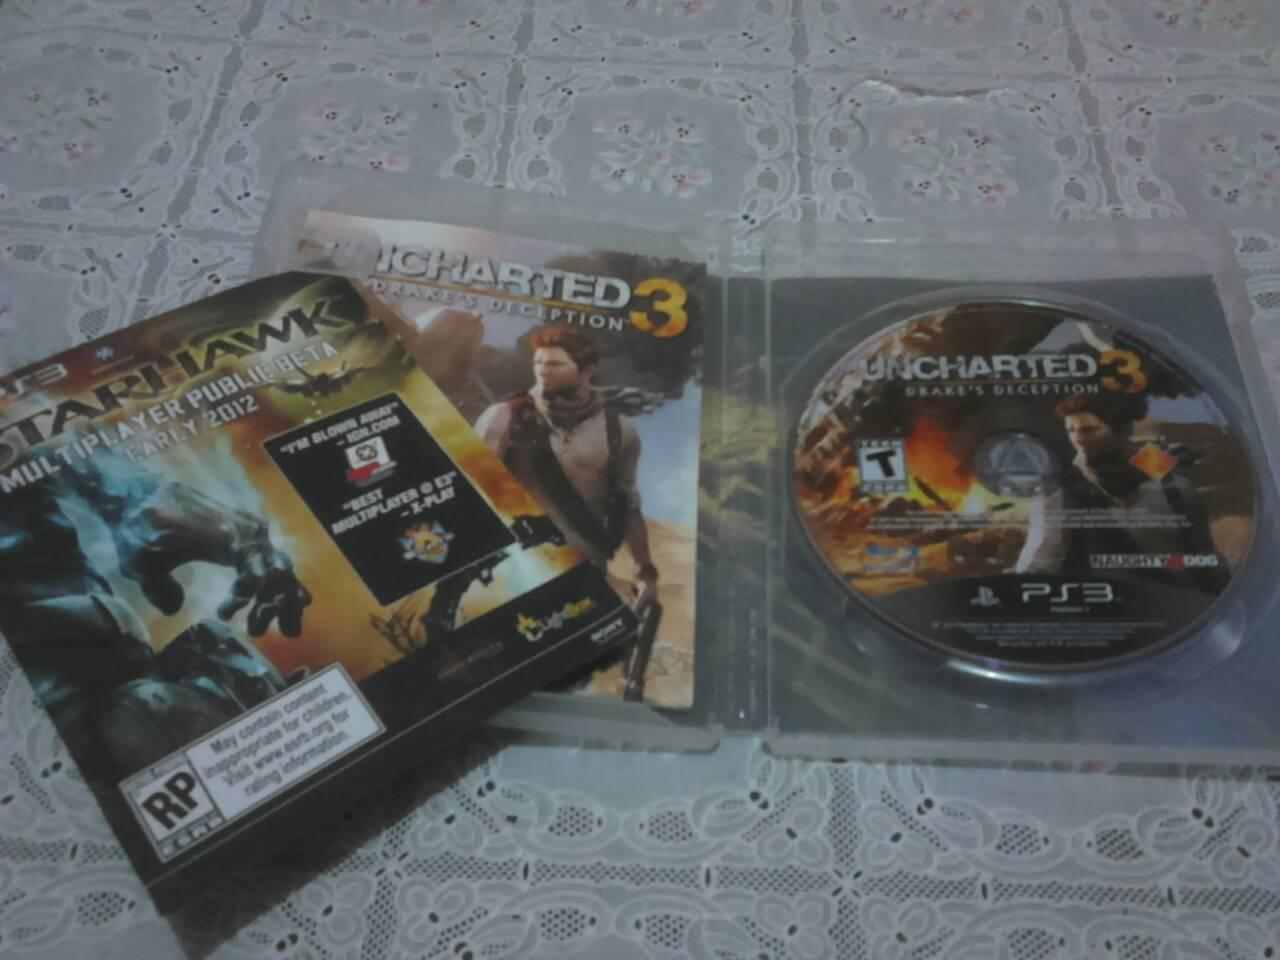 Jual Rugi BU Uncharted 3, Red Faction, and Battlefield 3